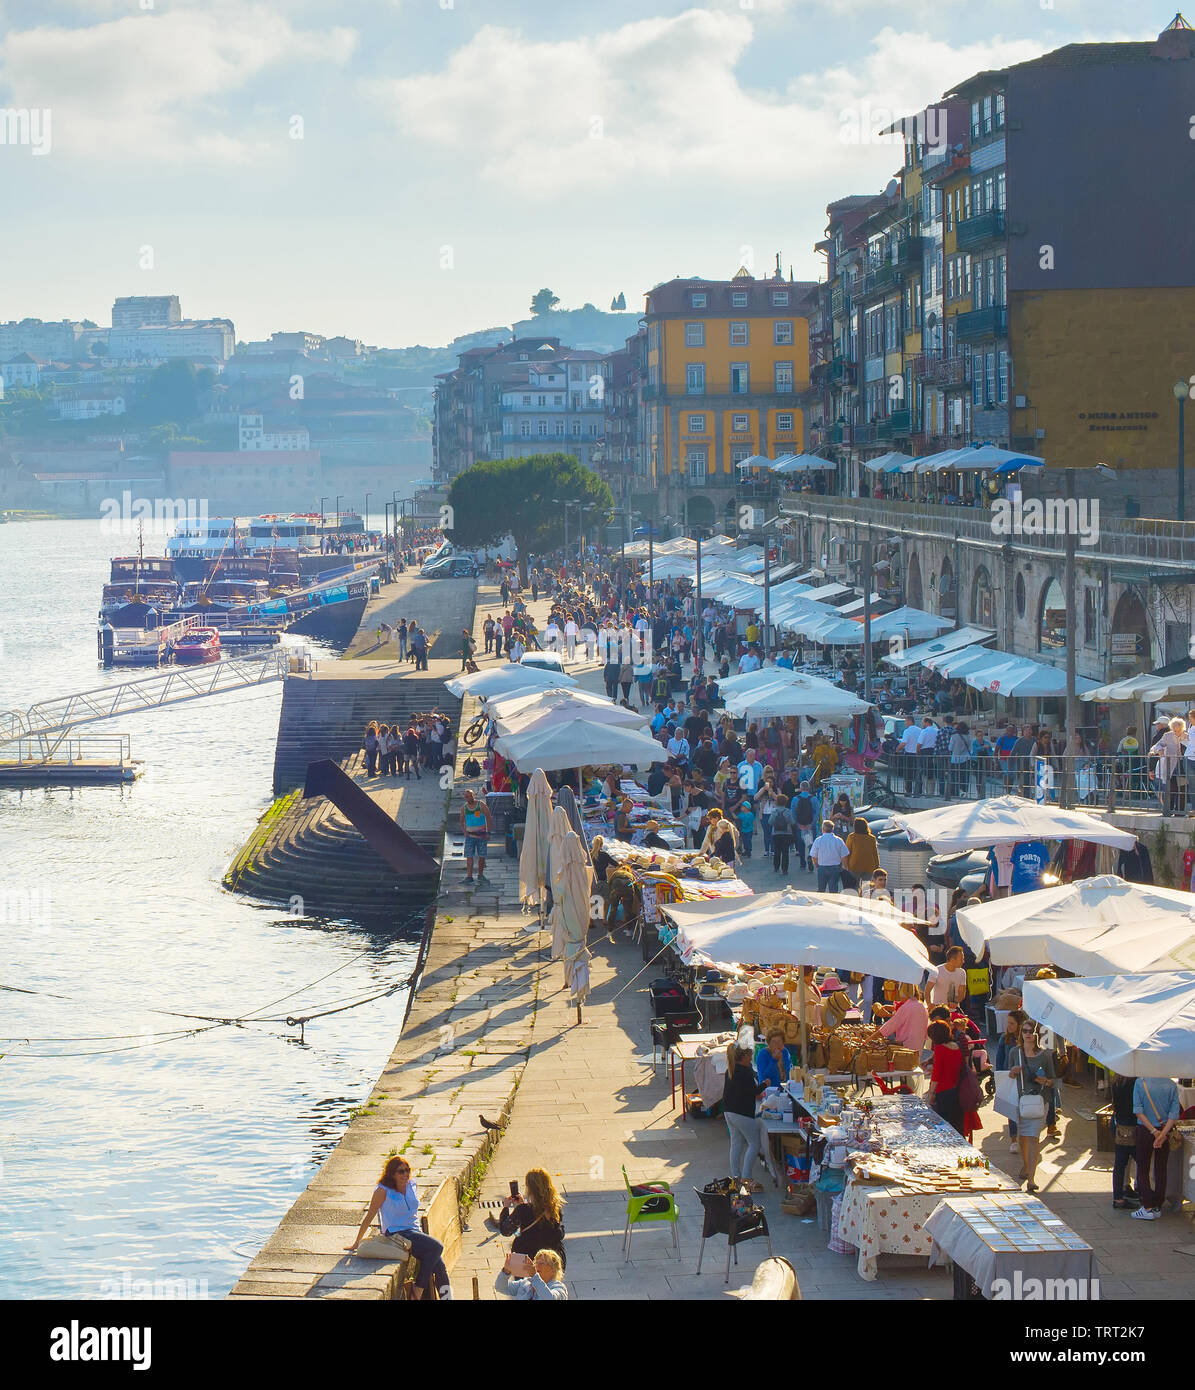 PORTO, PORTUGAL - JUNE 2, 2017: Cityscape with Porto Old Town quay, outdoor restaurants, souvenir stalls, crowd of tourists - Stock Image